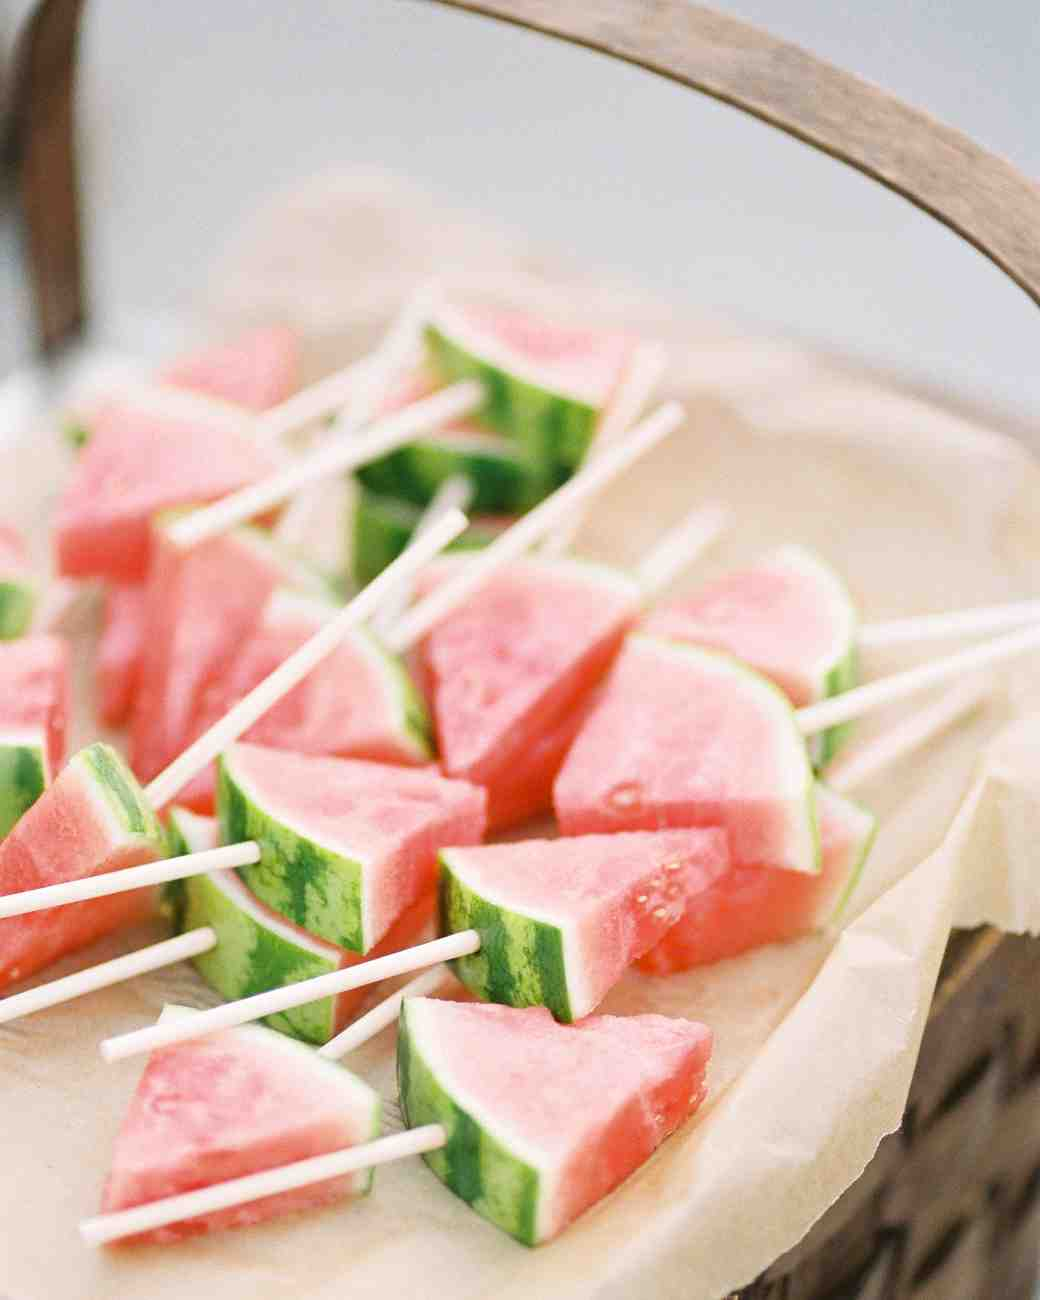 watermelon on sticks